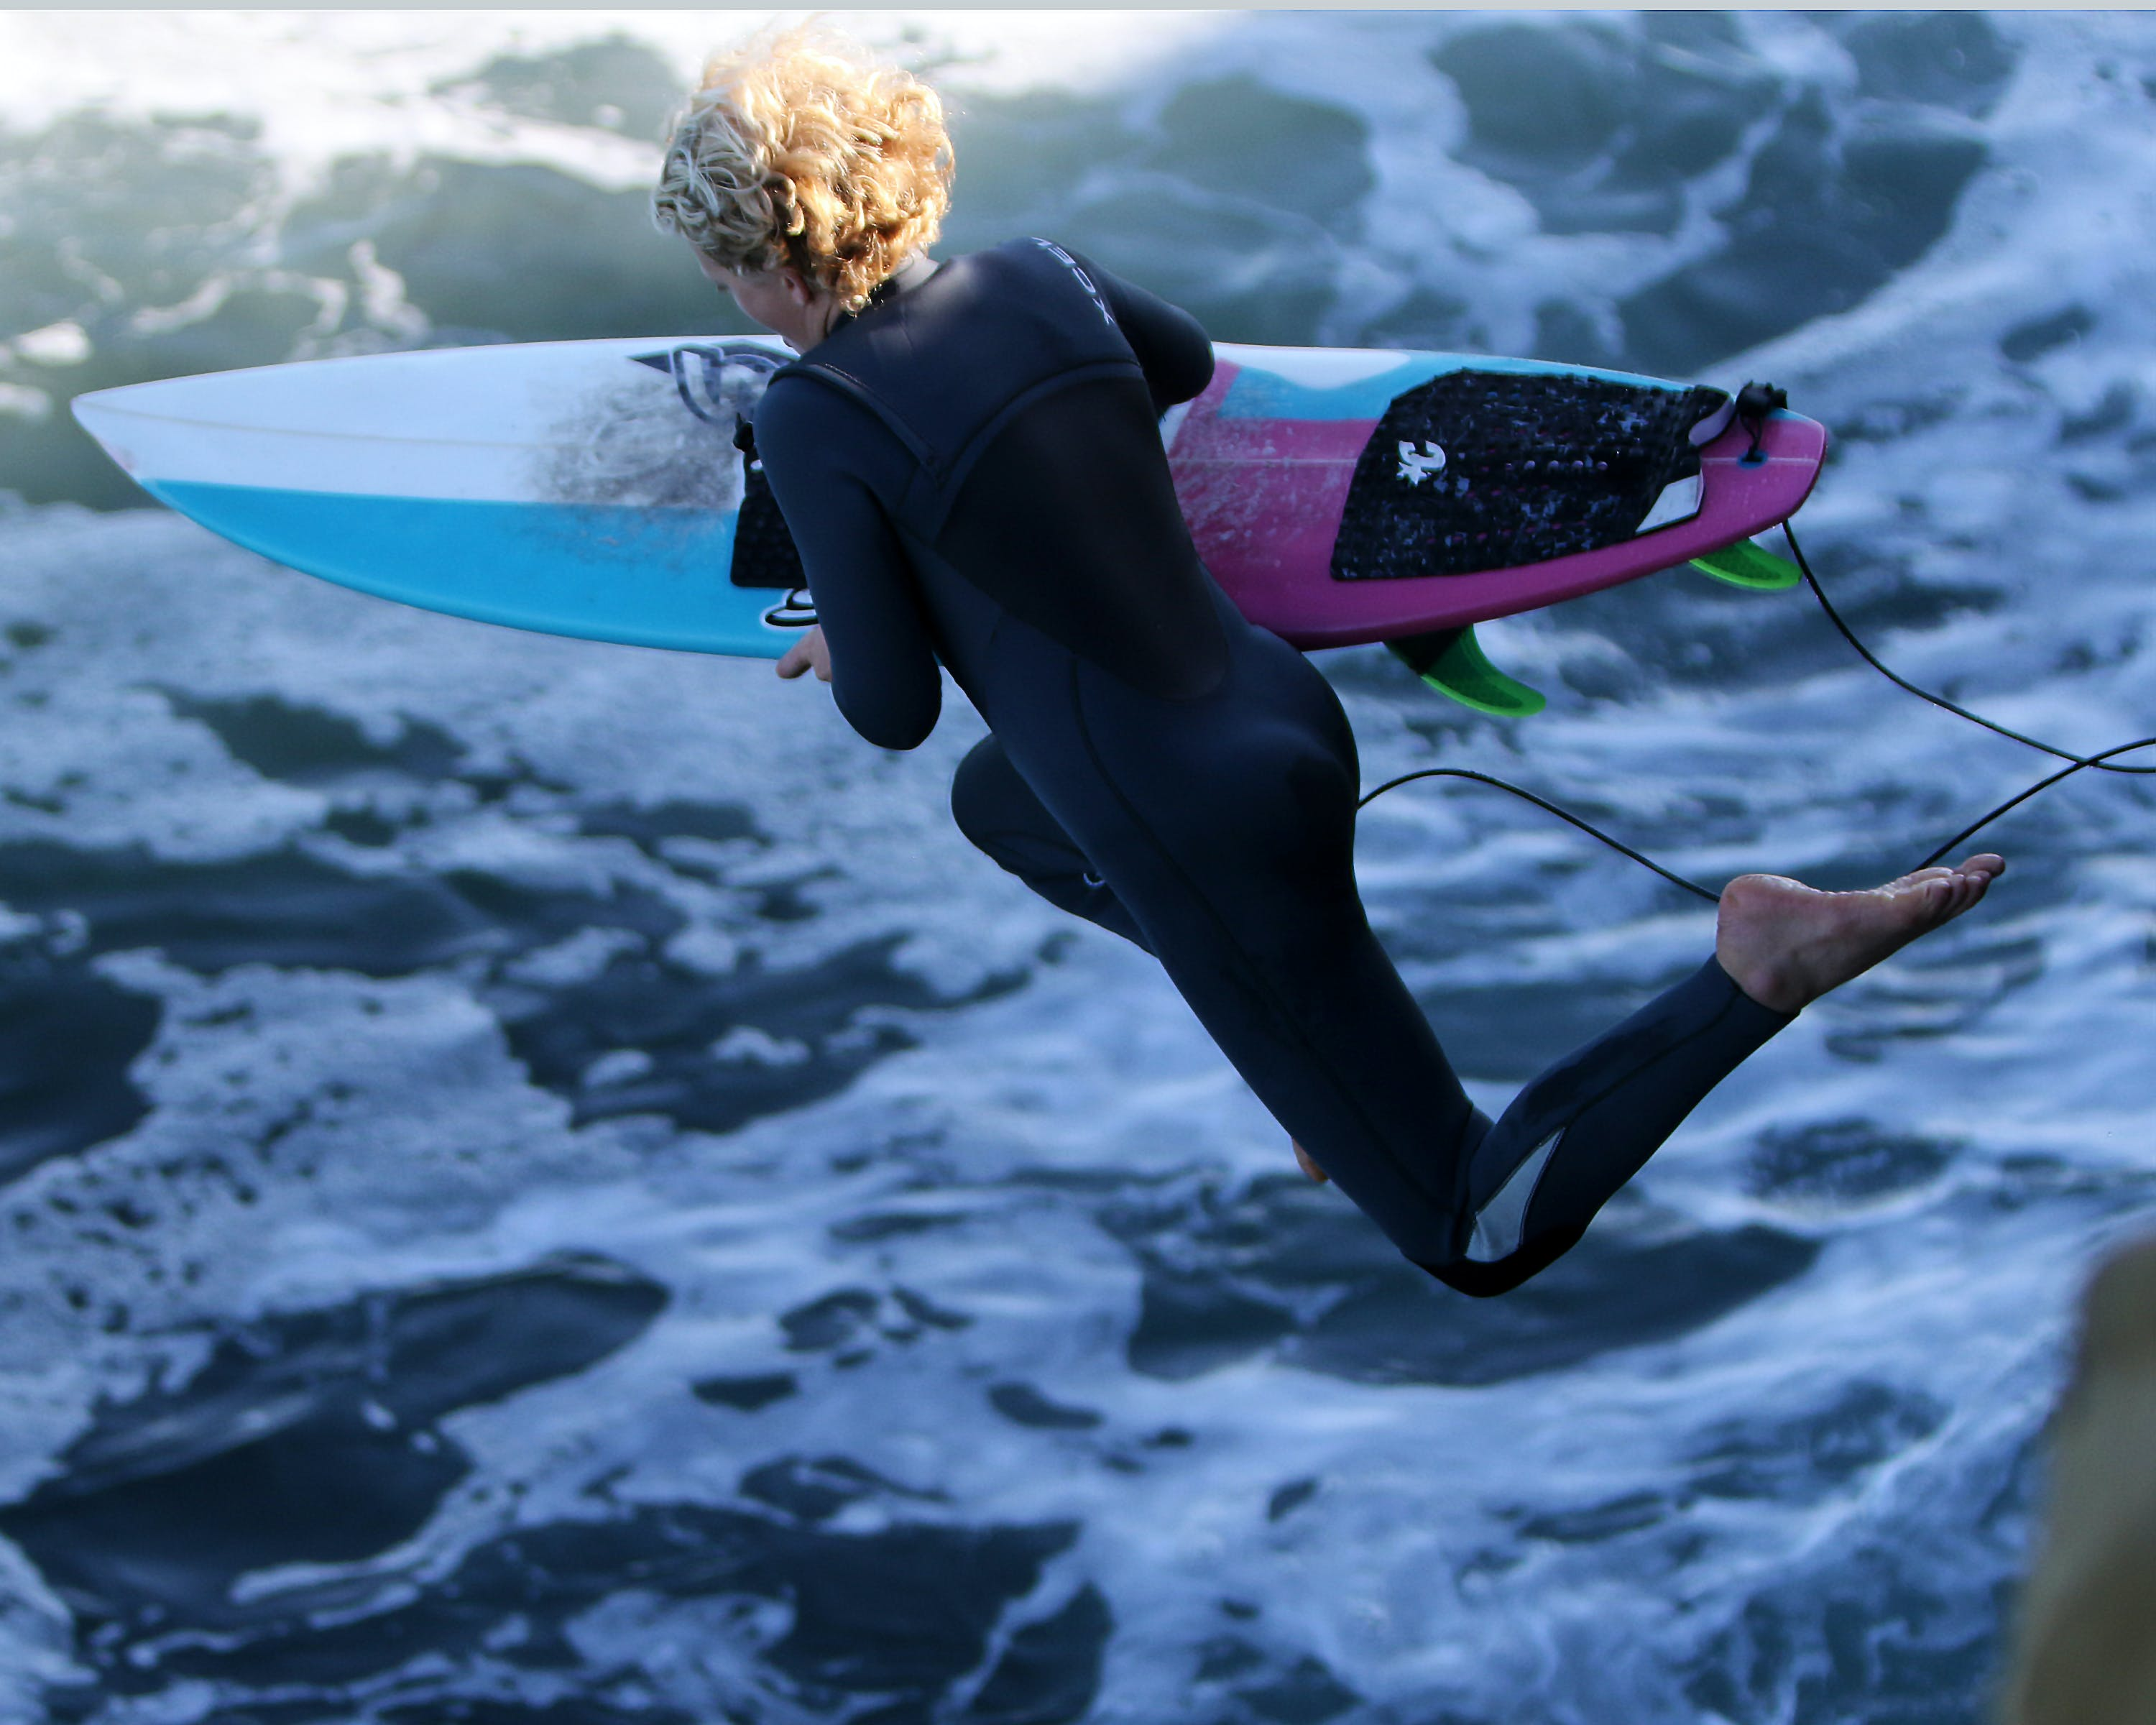 Woman With Surfboard Jumping to Body of Water